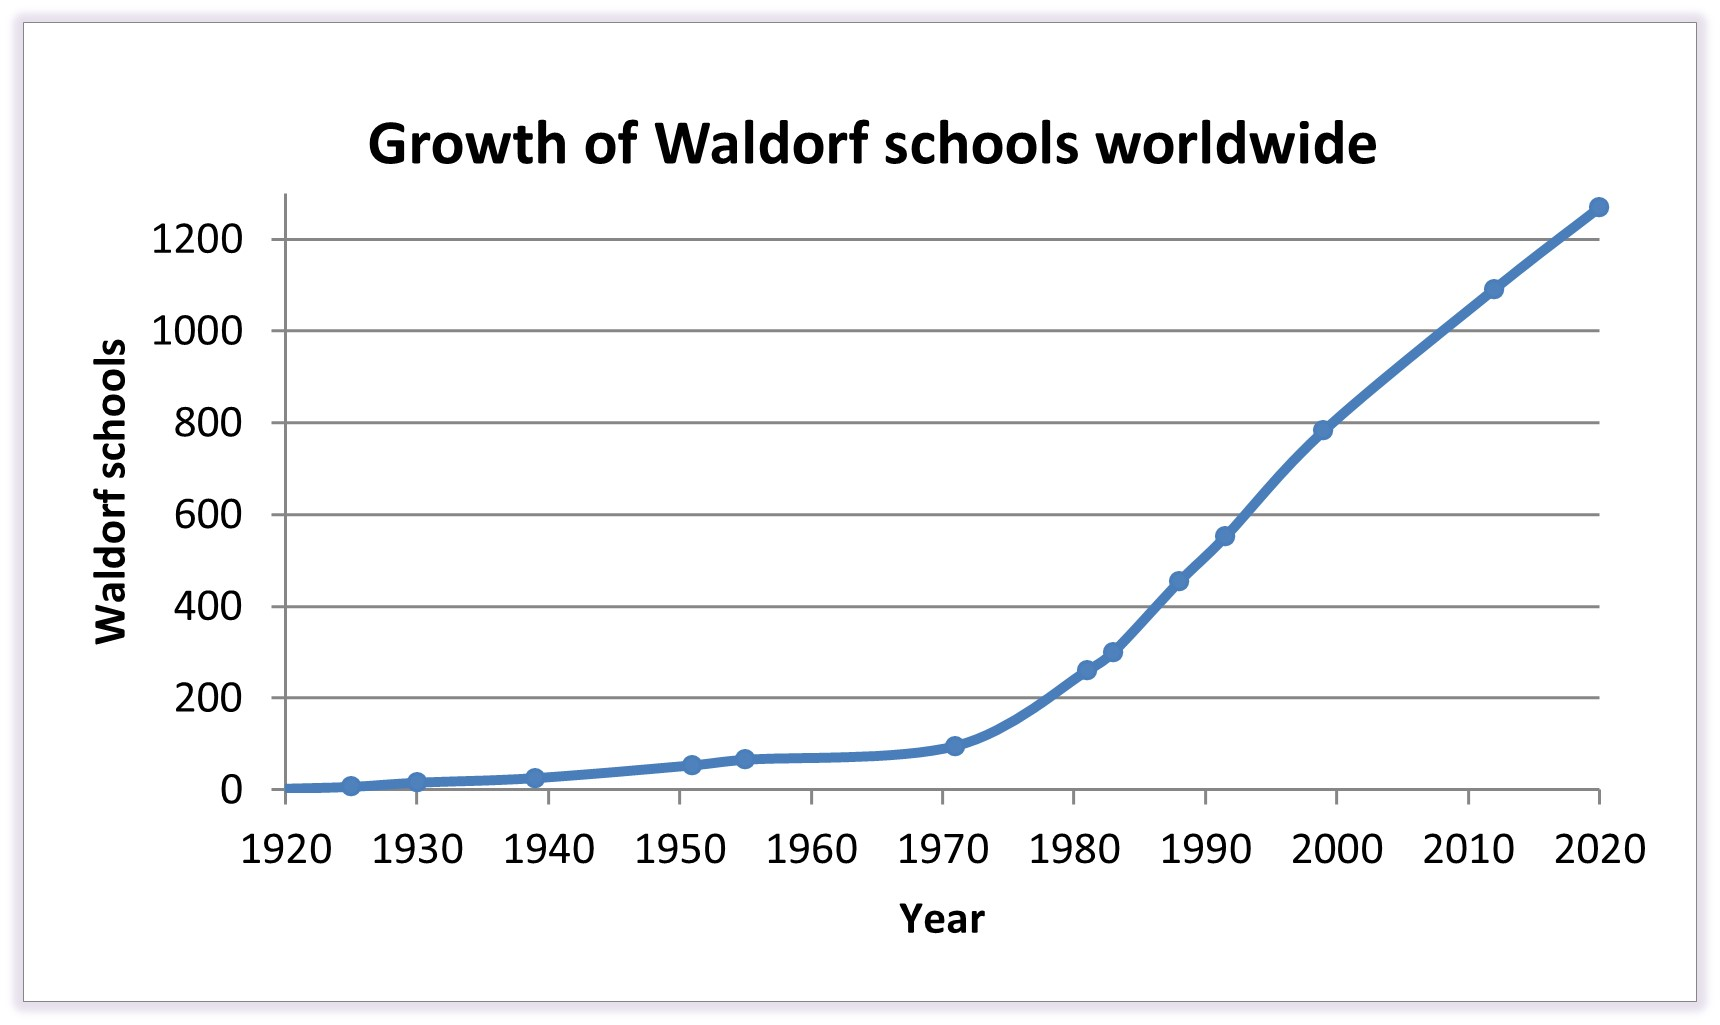 The amount of Waldorf Schools grows